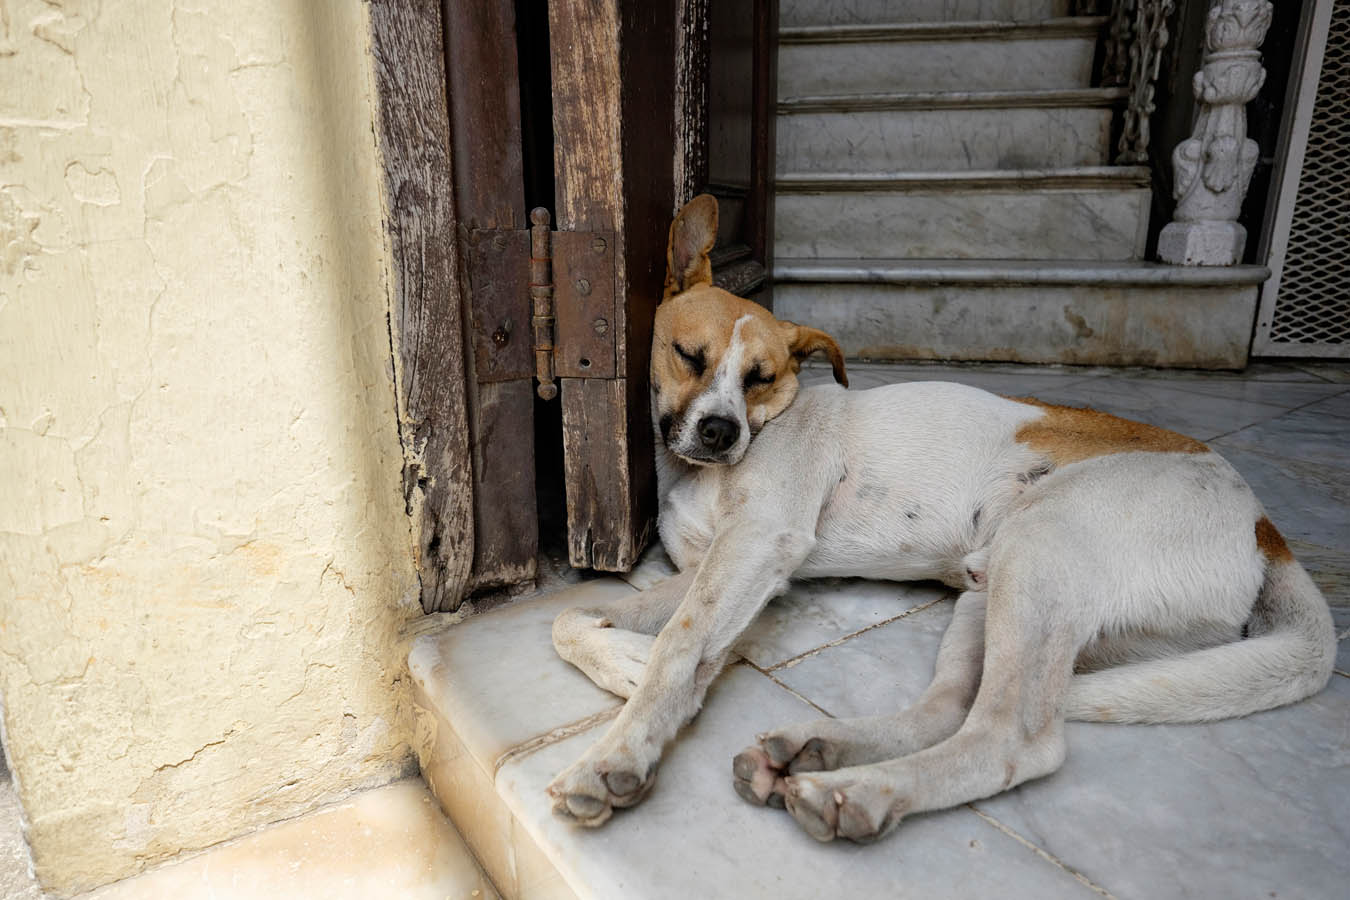 Dogs of Cuba, photography by Sharon Blance